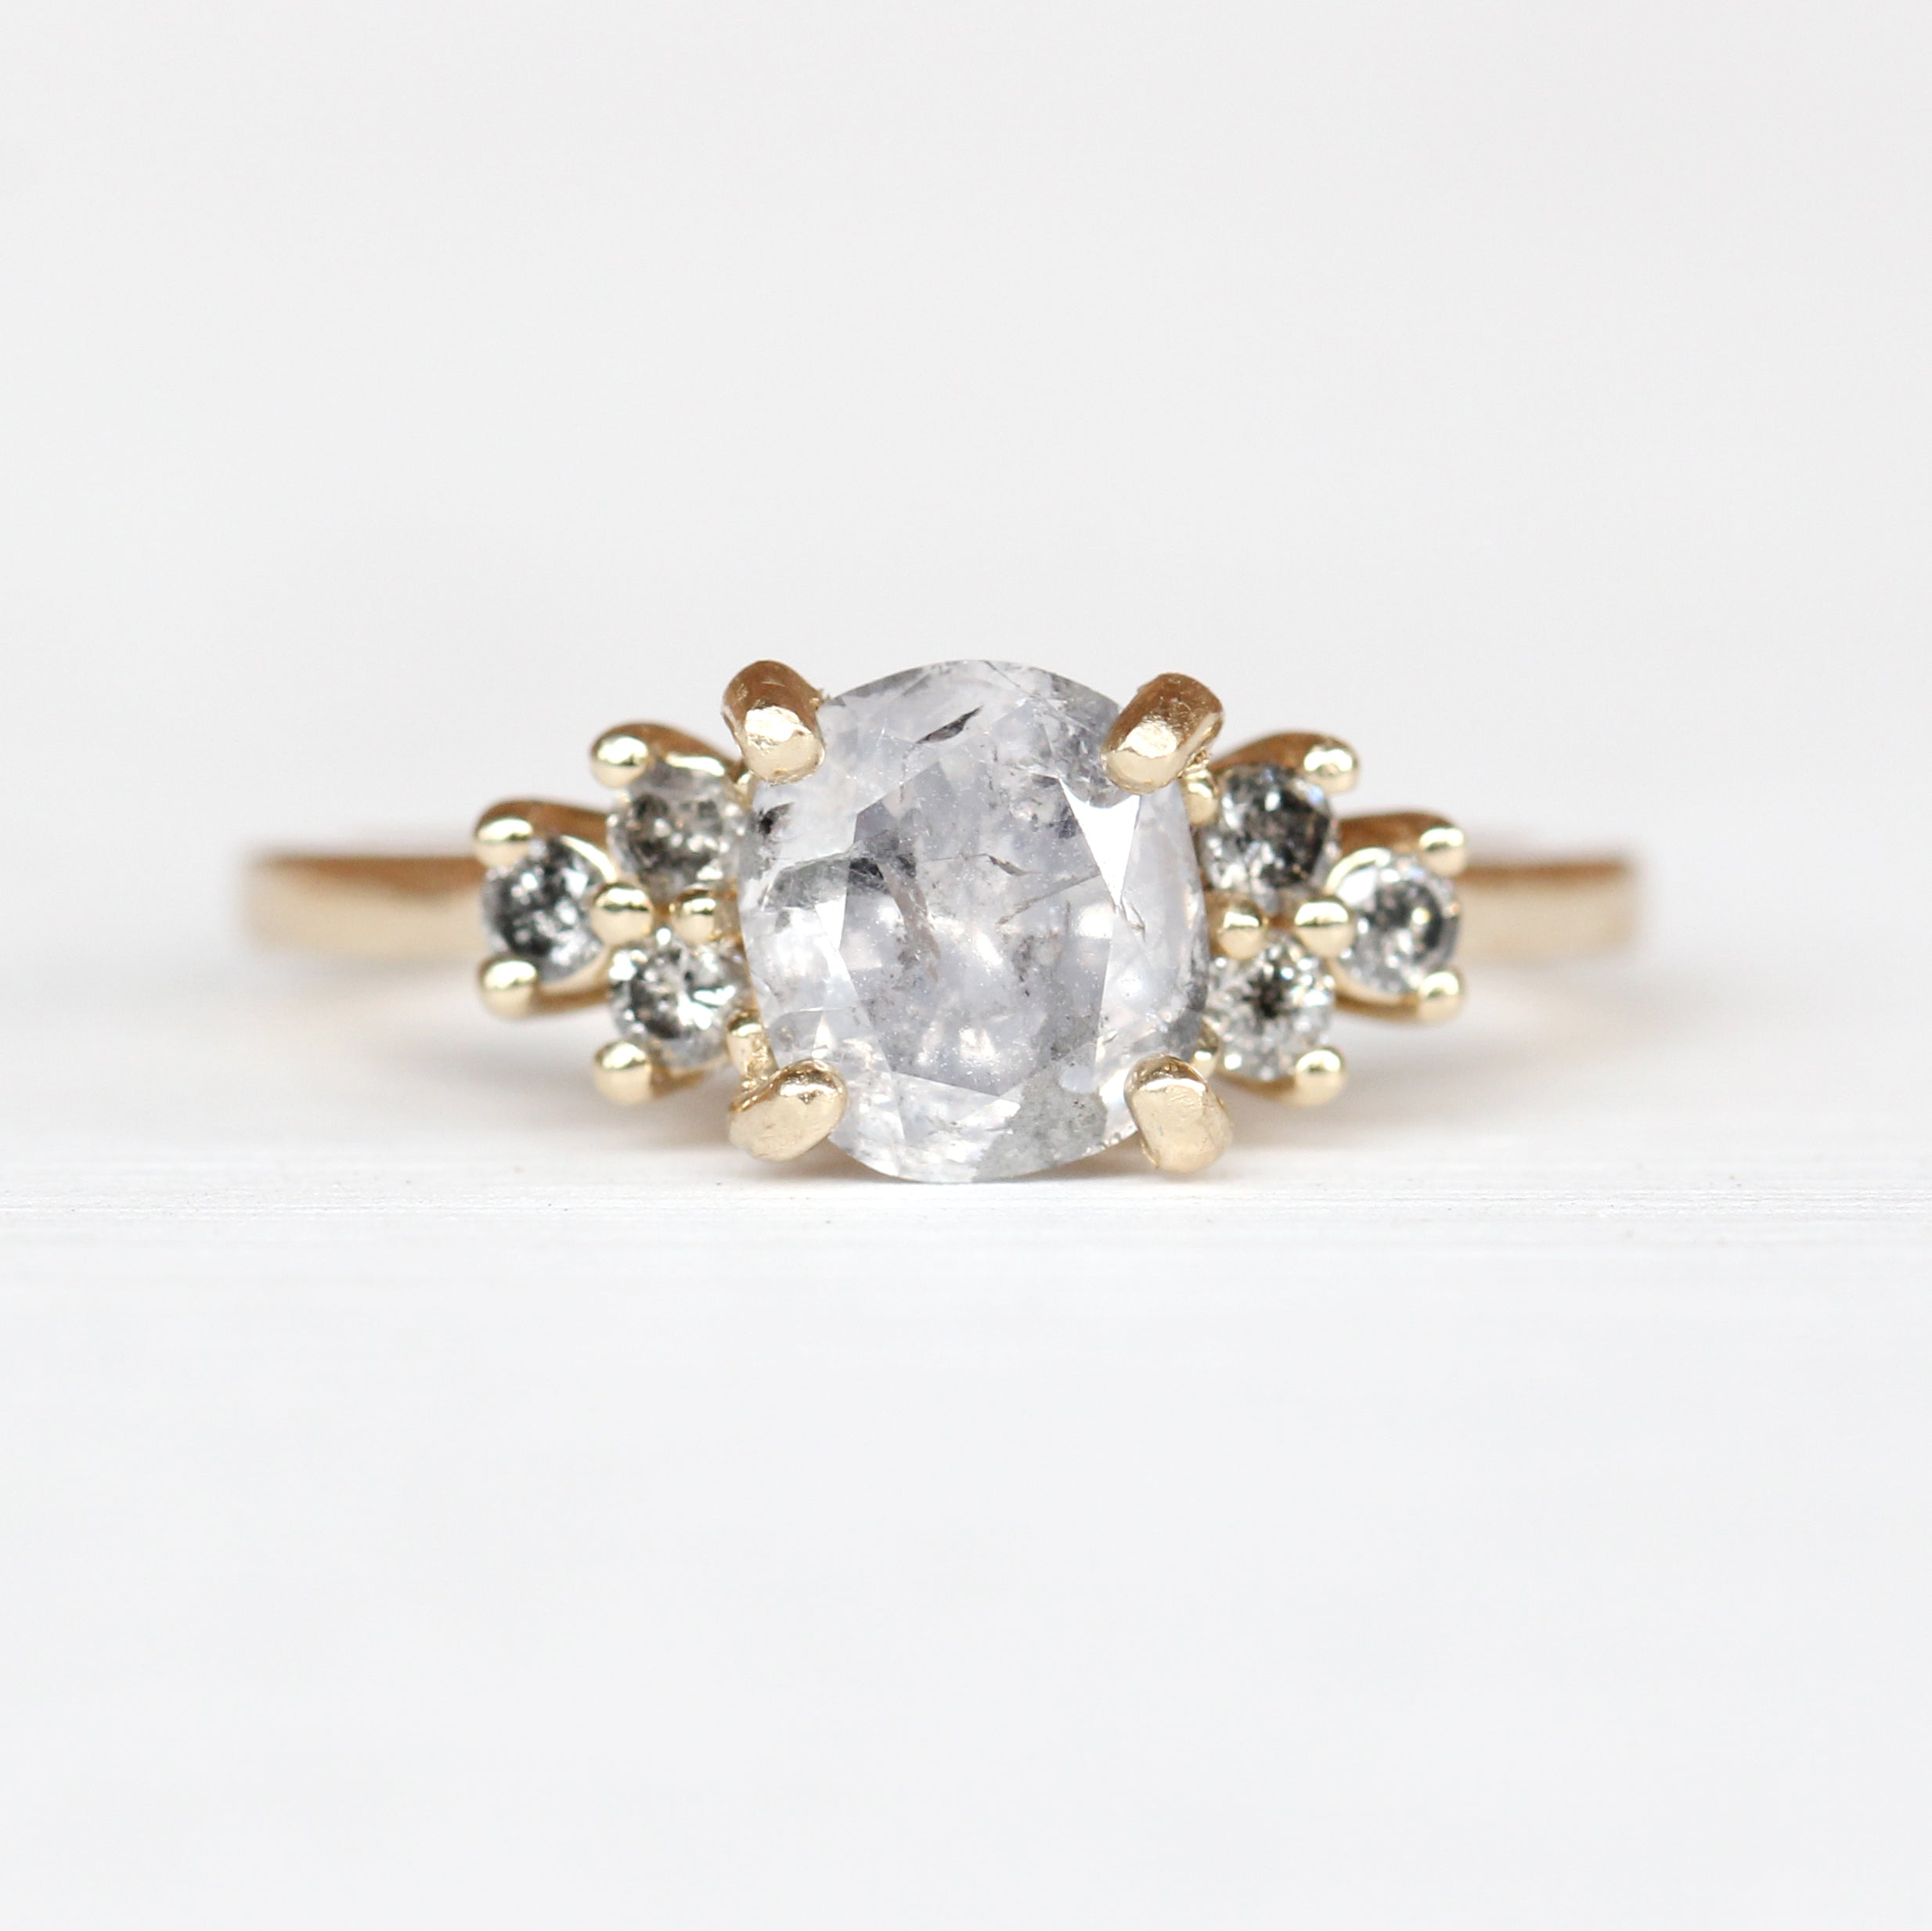 Veragene Ring with a 1.5ct Light Gray Celestial Cushion Diamond in 14k Yellow Gold - Ready to Size and Ship